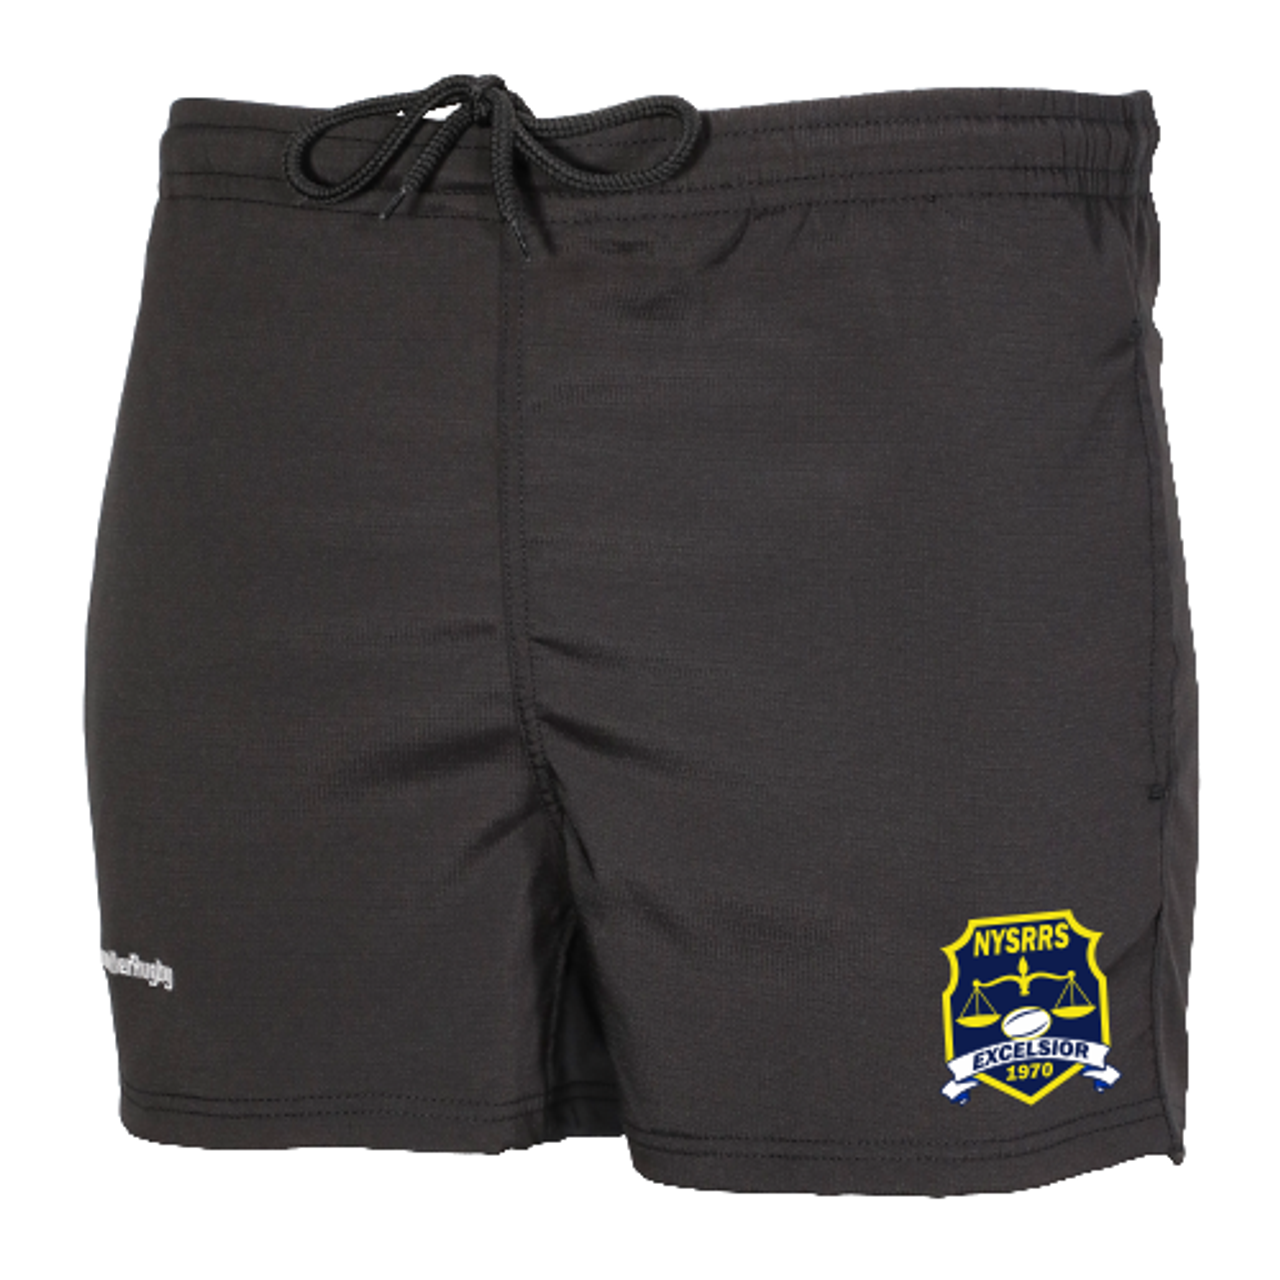 NYSRRS Pocketed Performance Rugby Shorts, Black